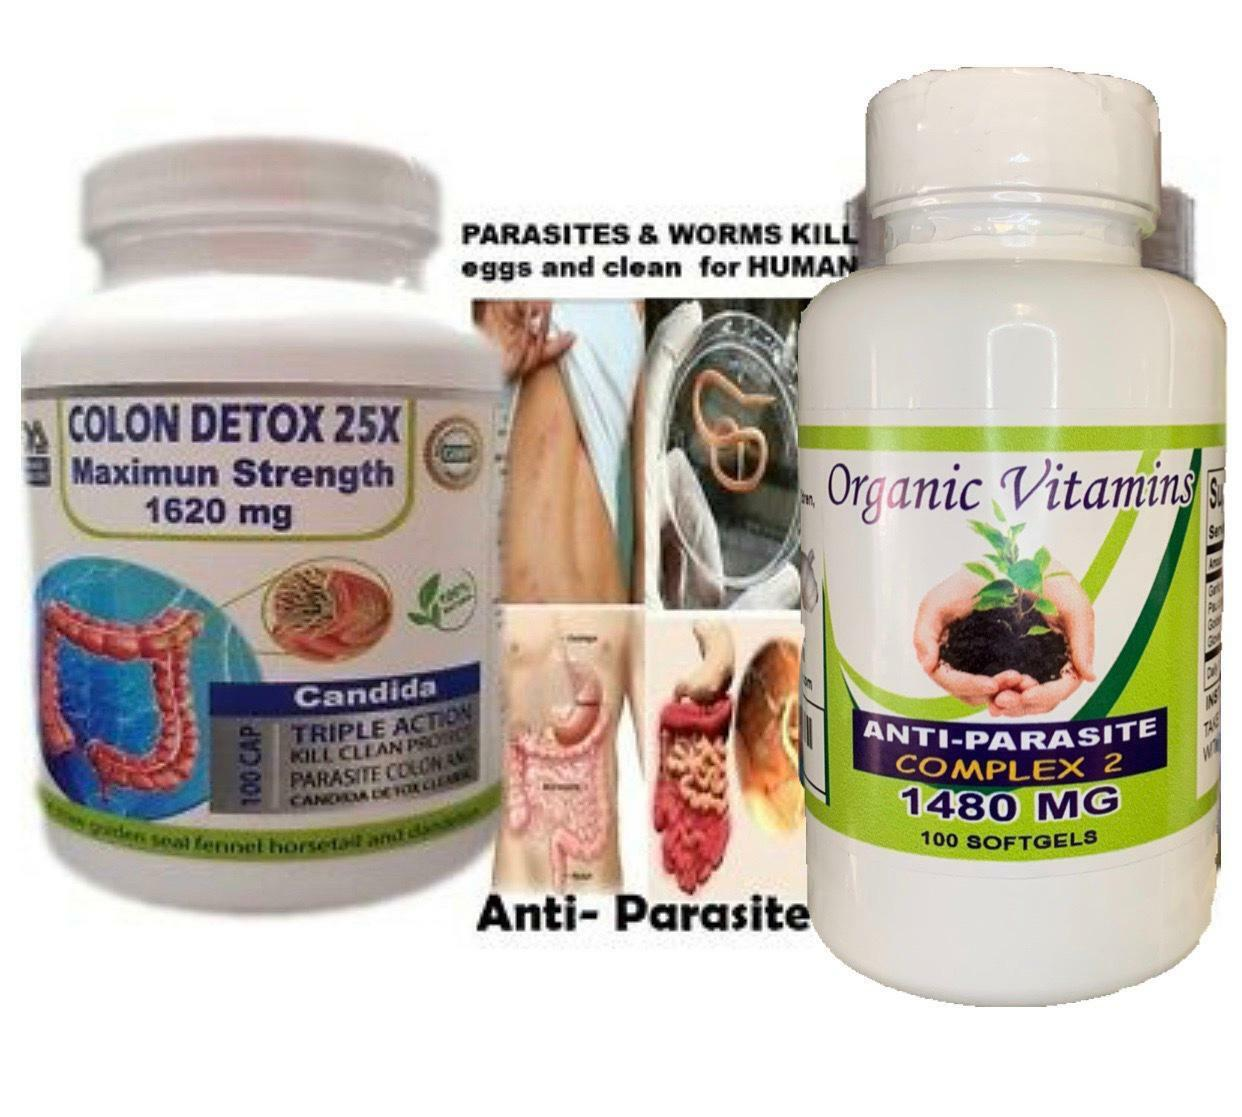 PARASITES & WORMS KILL eggs and clean - HUMAN - (TREAT & PREVENT)